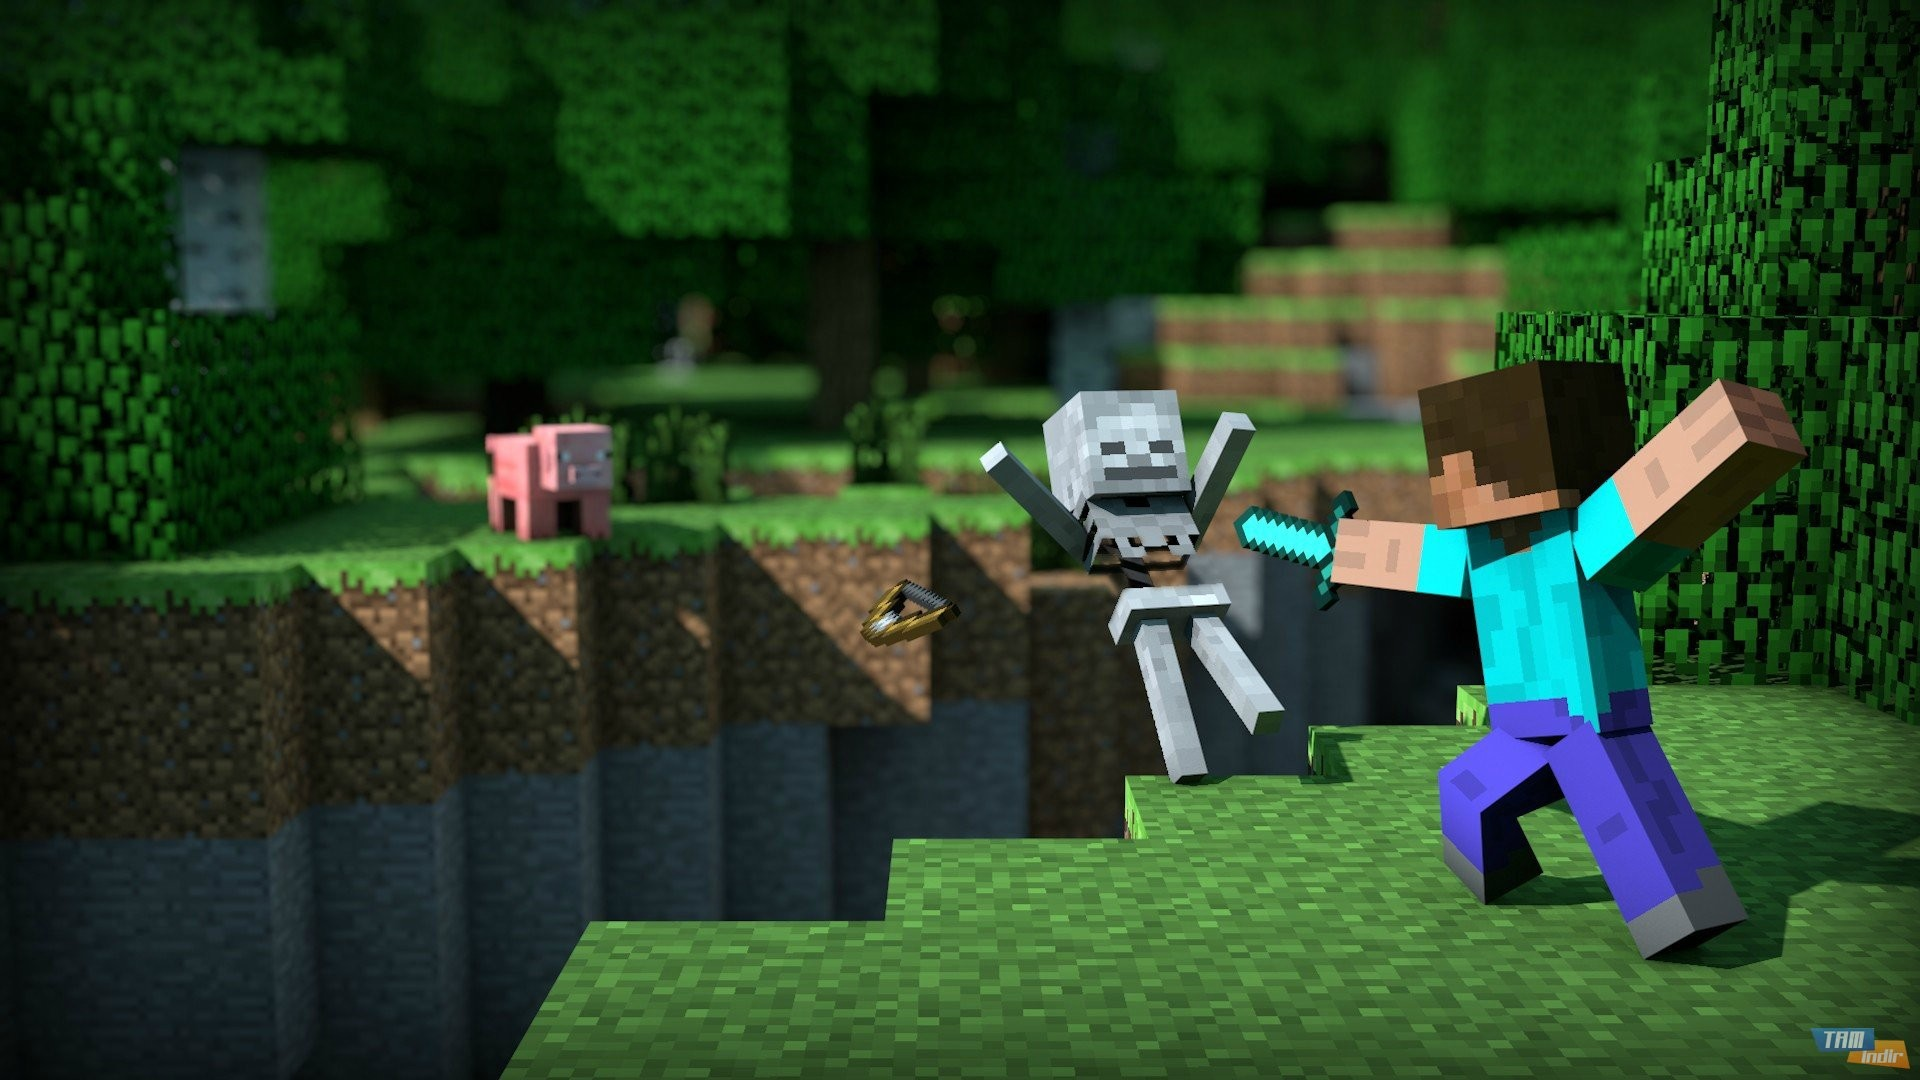 awesome minecraft hd desktop wallpapers 1080p backgrounds 1920×1080